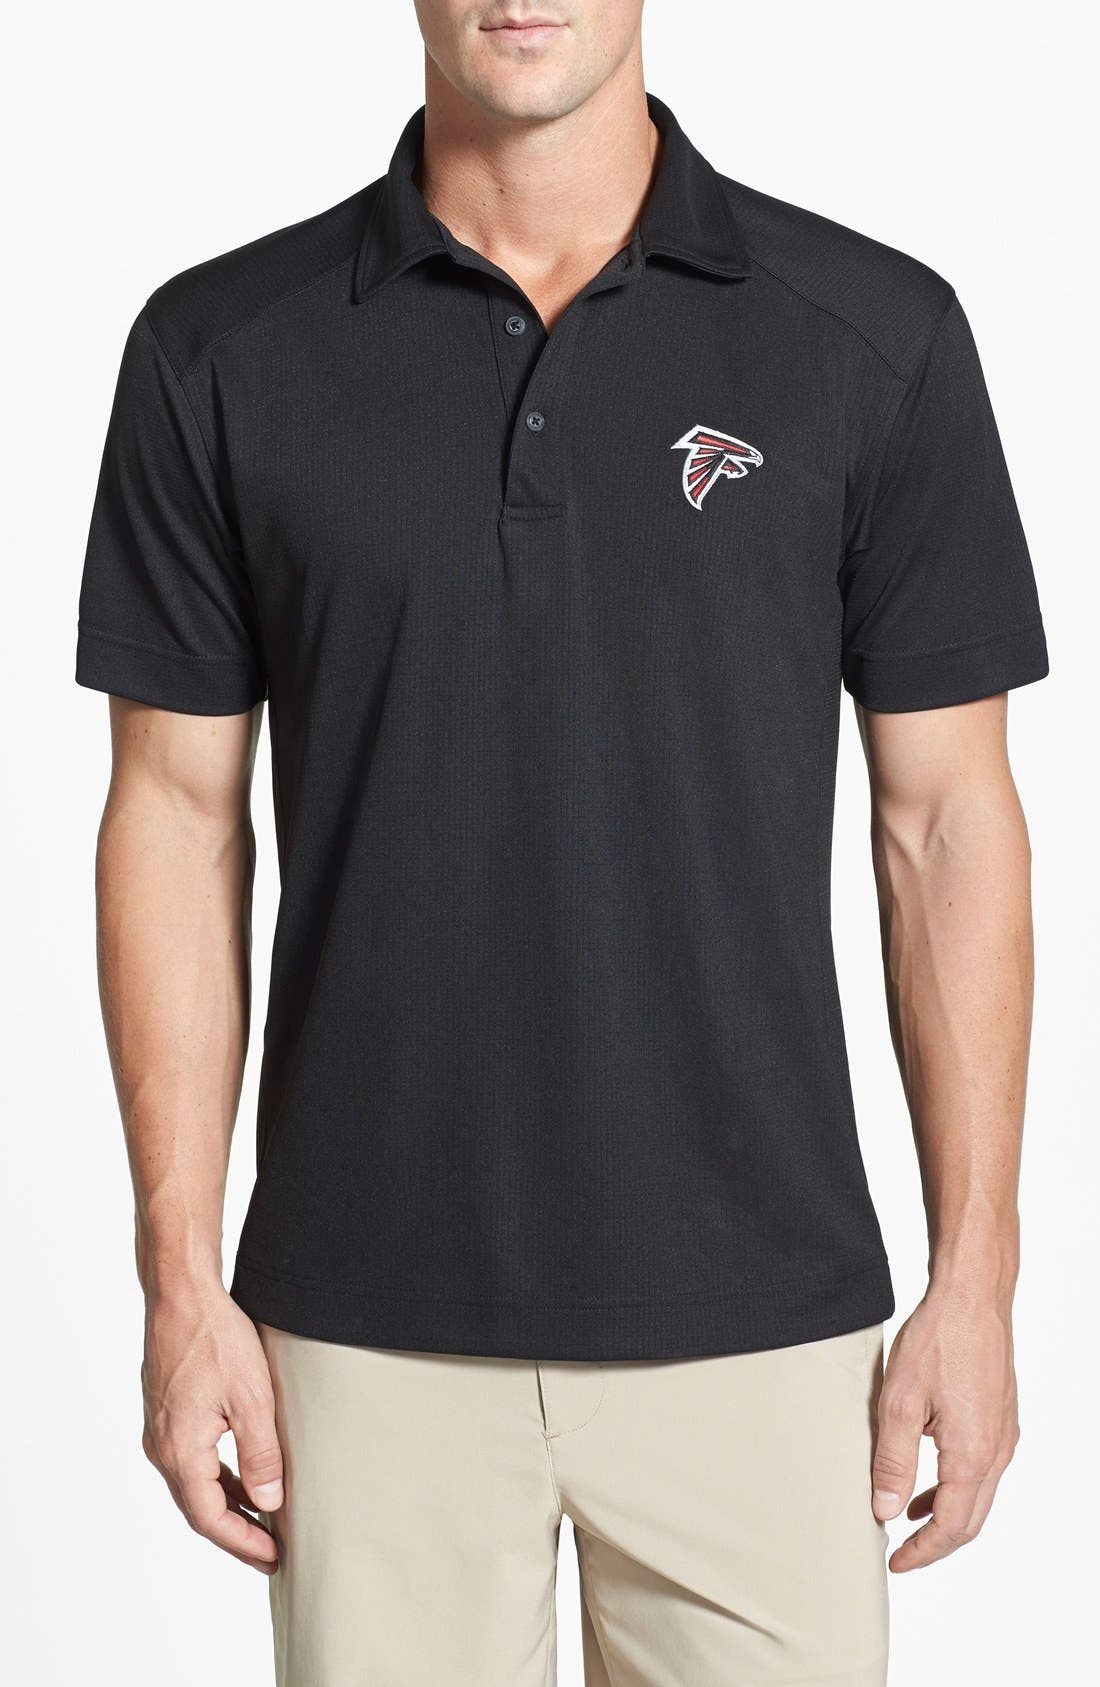 Atlanta Falcons - Genre DryTec Moisture Wicking Polo,                         Main,                         color, 001